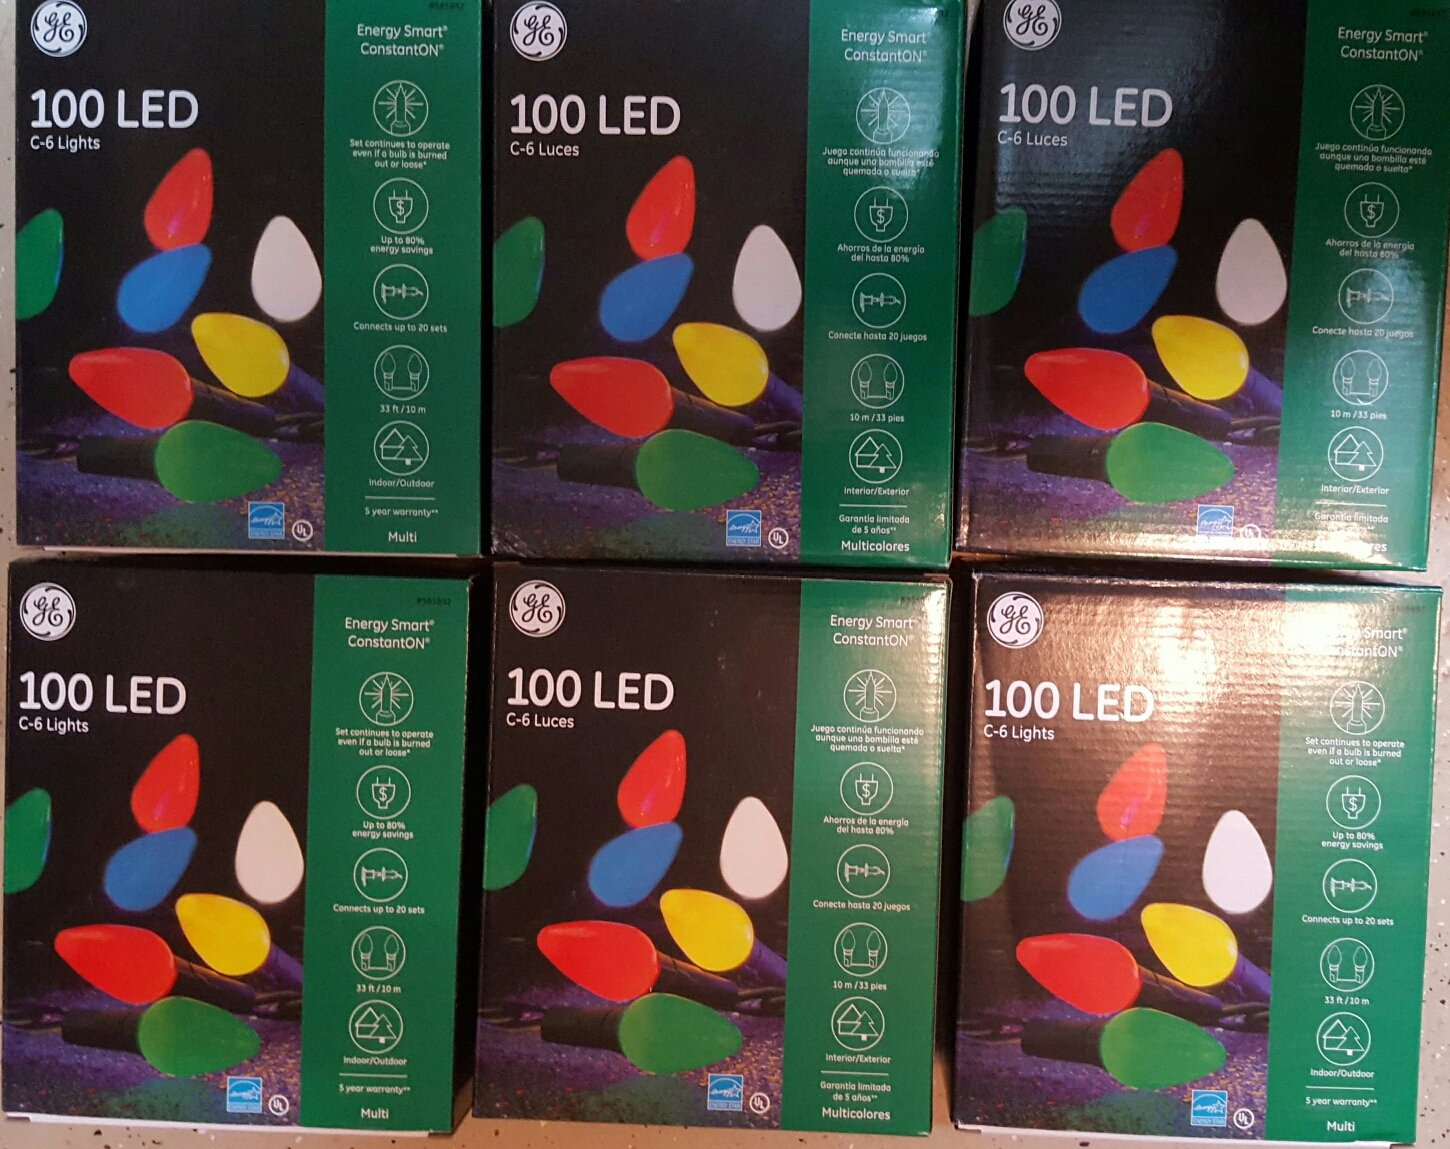 1 33ft String GE Energy Smart 100 LED C-6 Holiday//Christmas Lights Indoor//Outdoor 00-13G45C-30